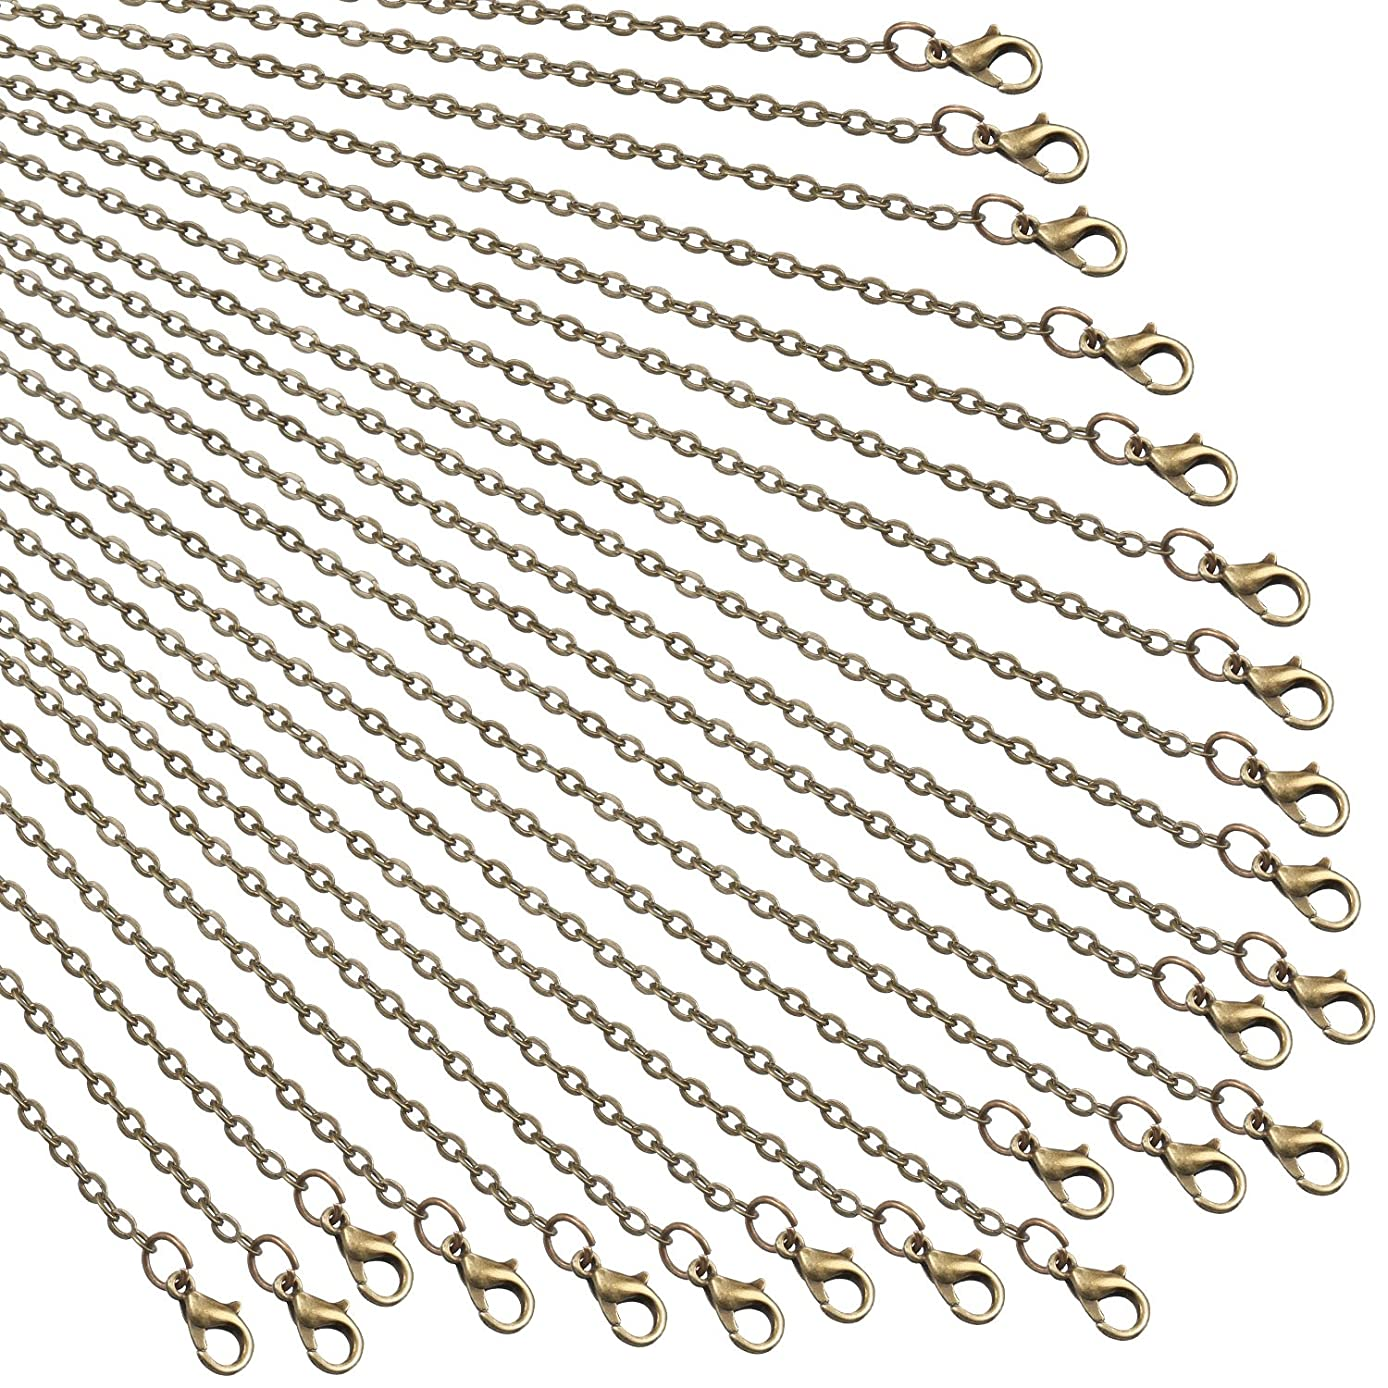 TecUnite 24 Pack Bronze Link Cable Chain Necklace DIY Chain Necklaces (24 Inch)